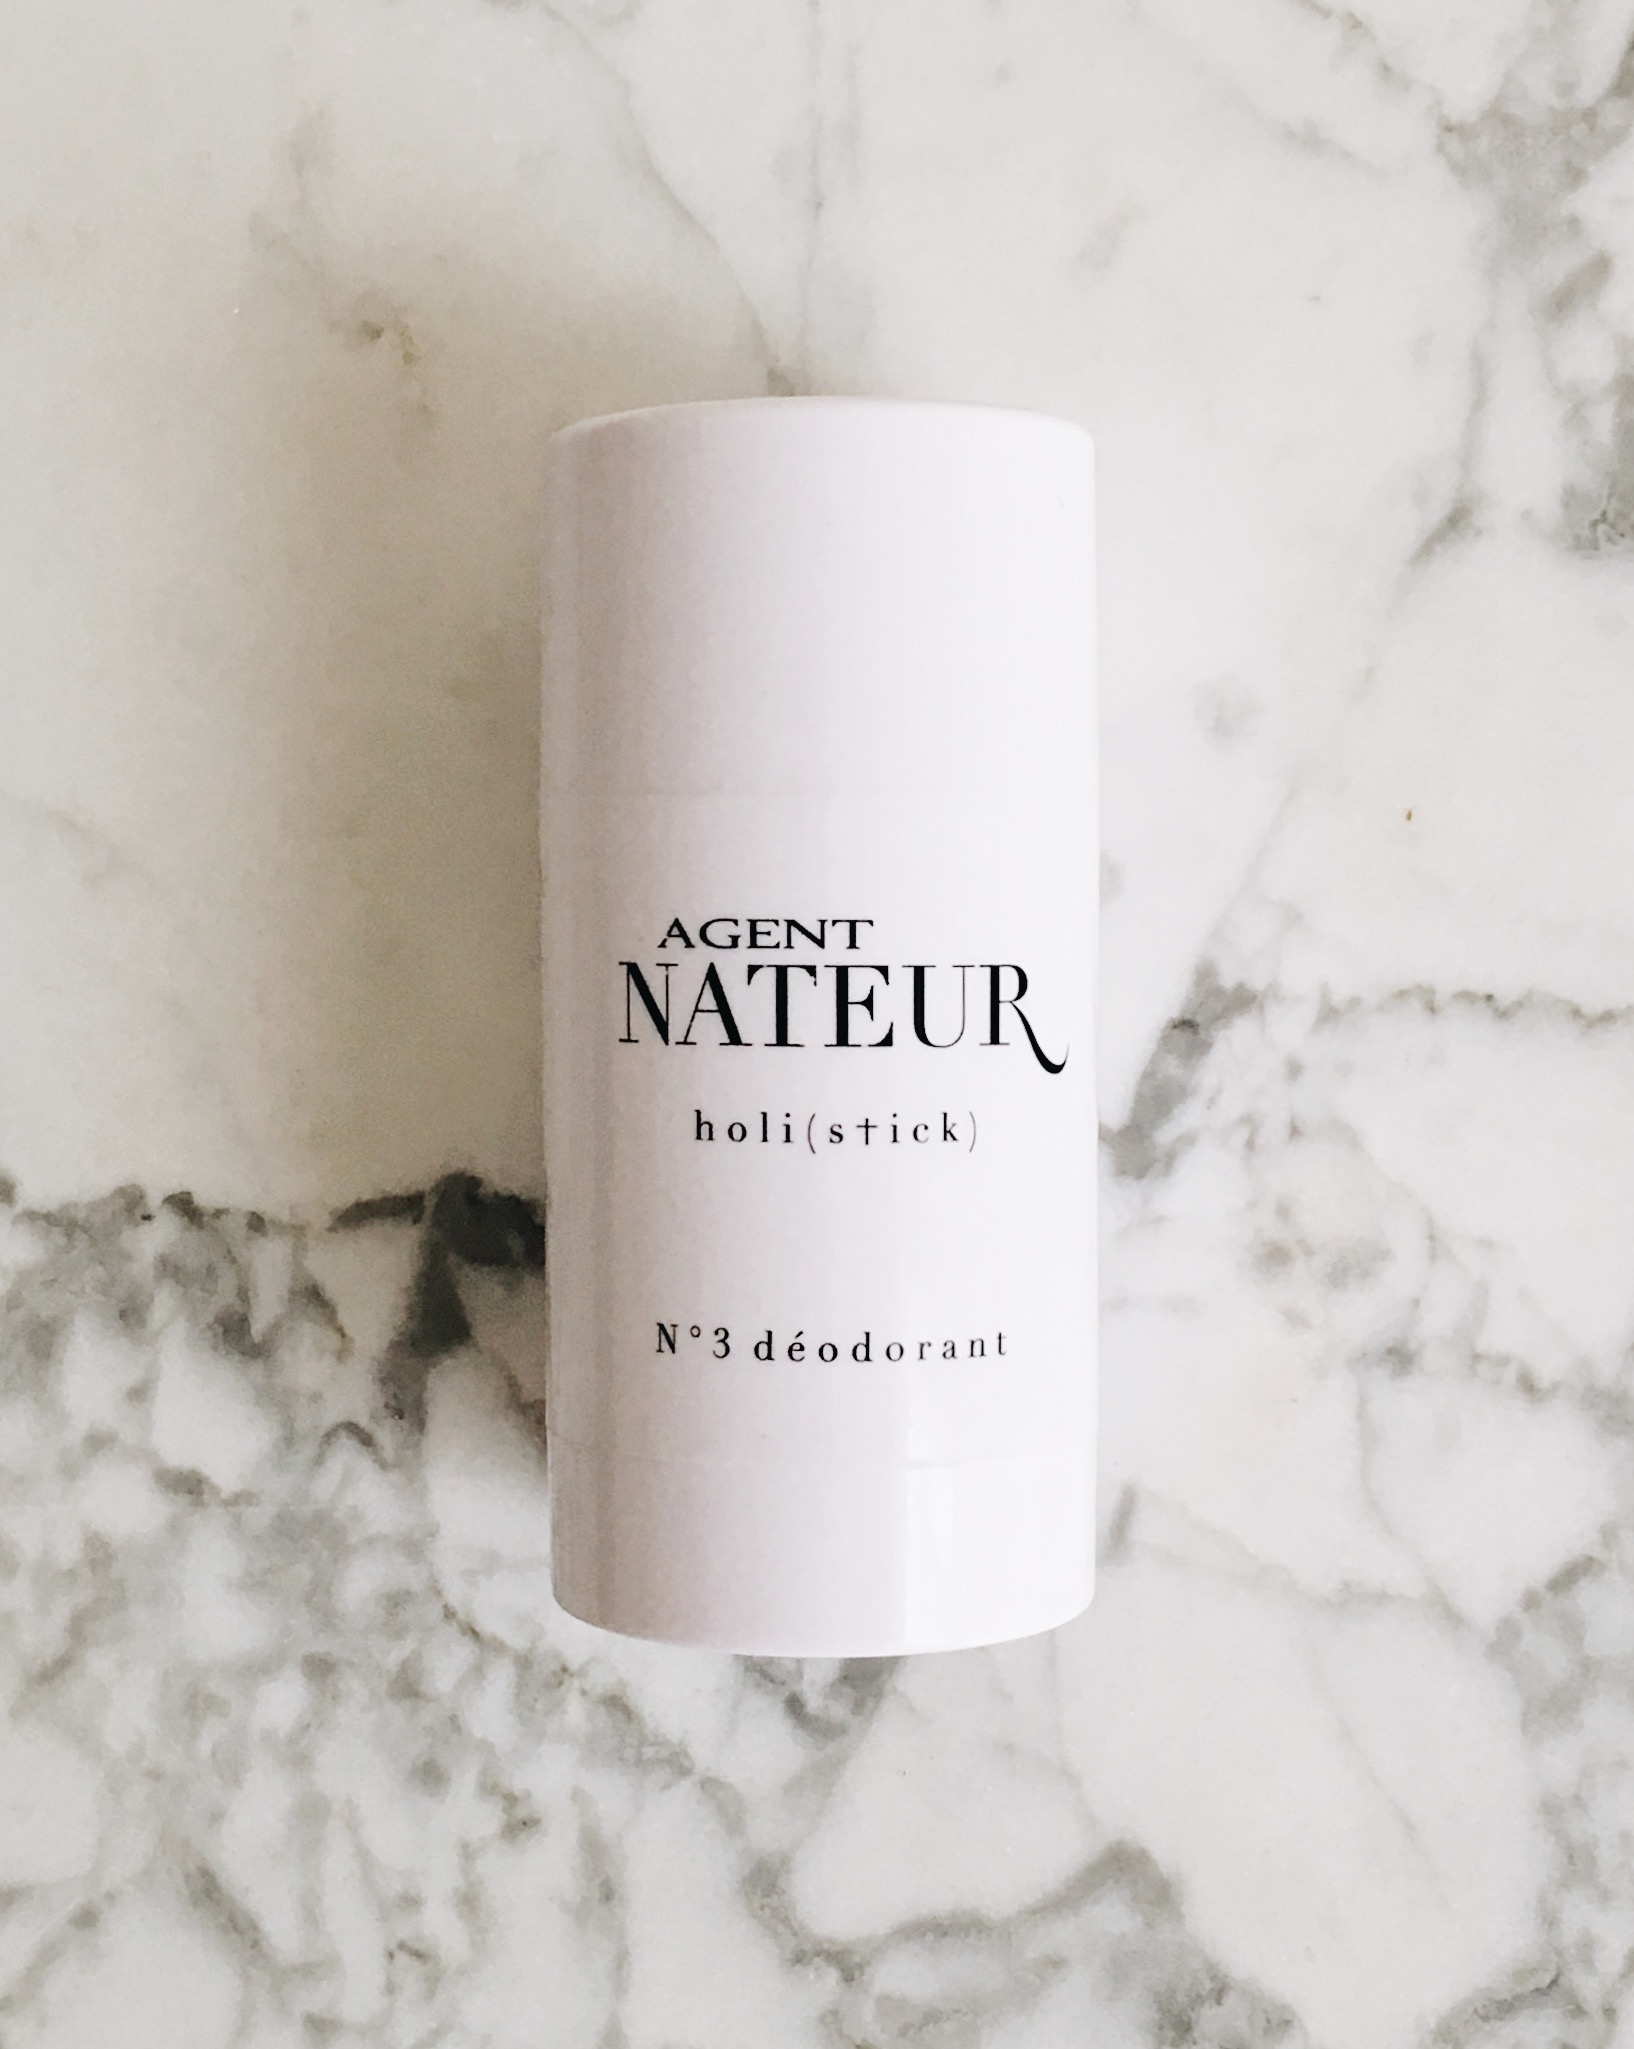 No. 3 Deodorant by Agent Nateur